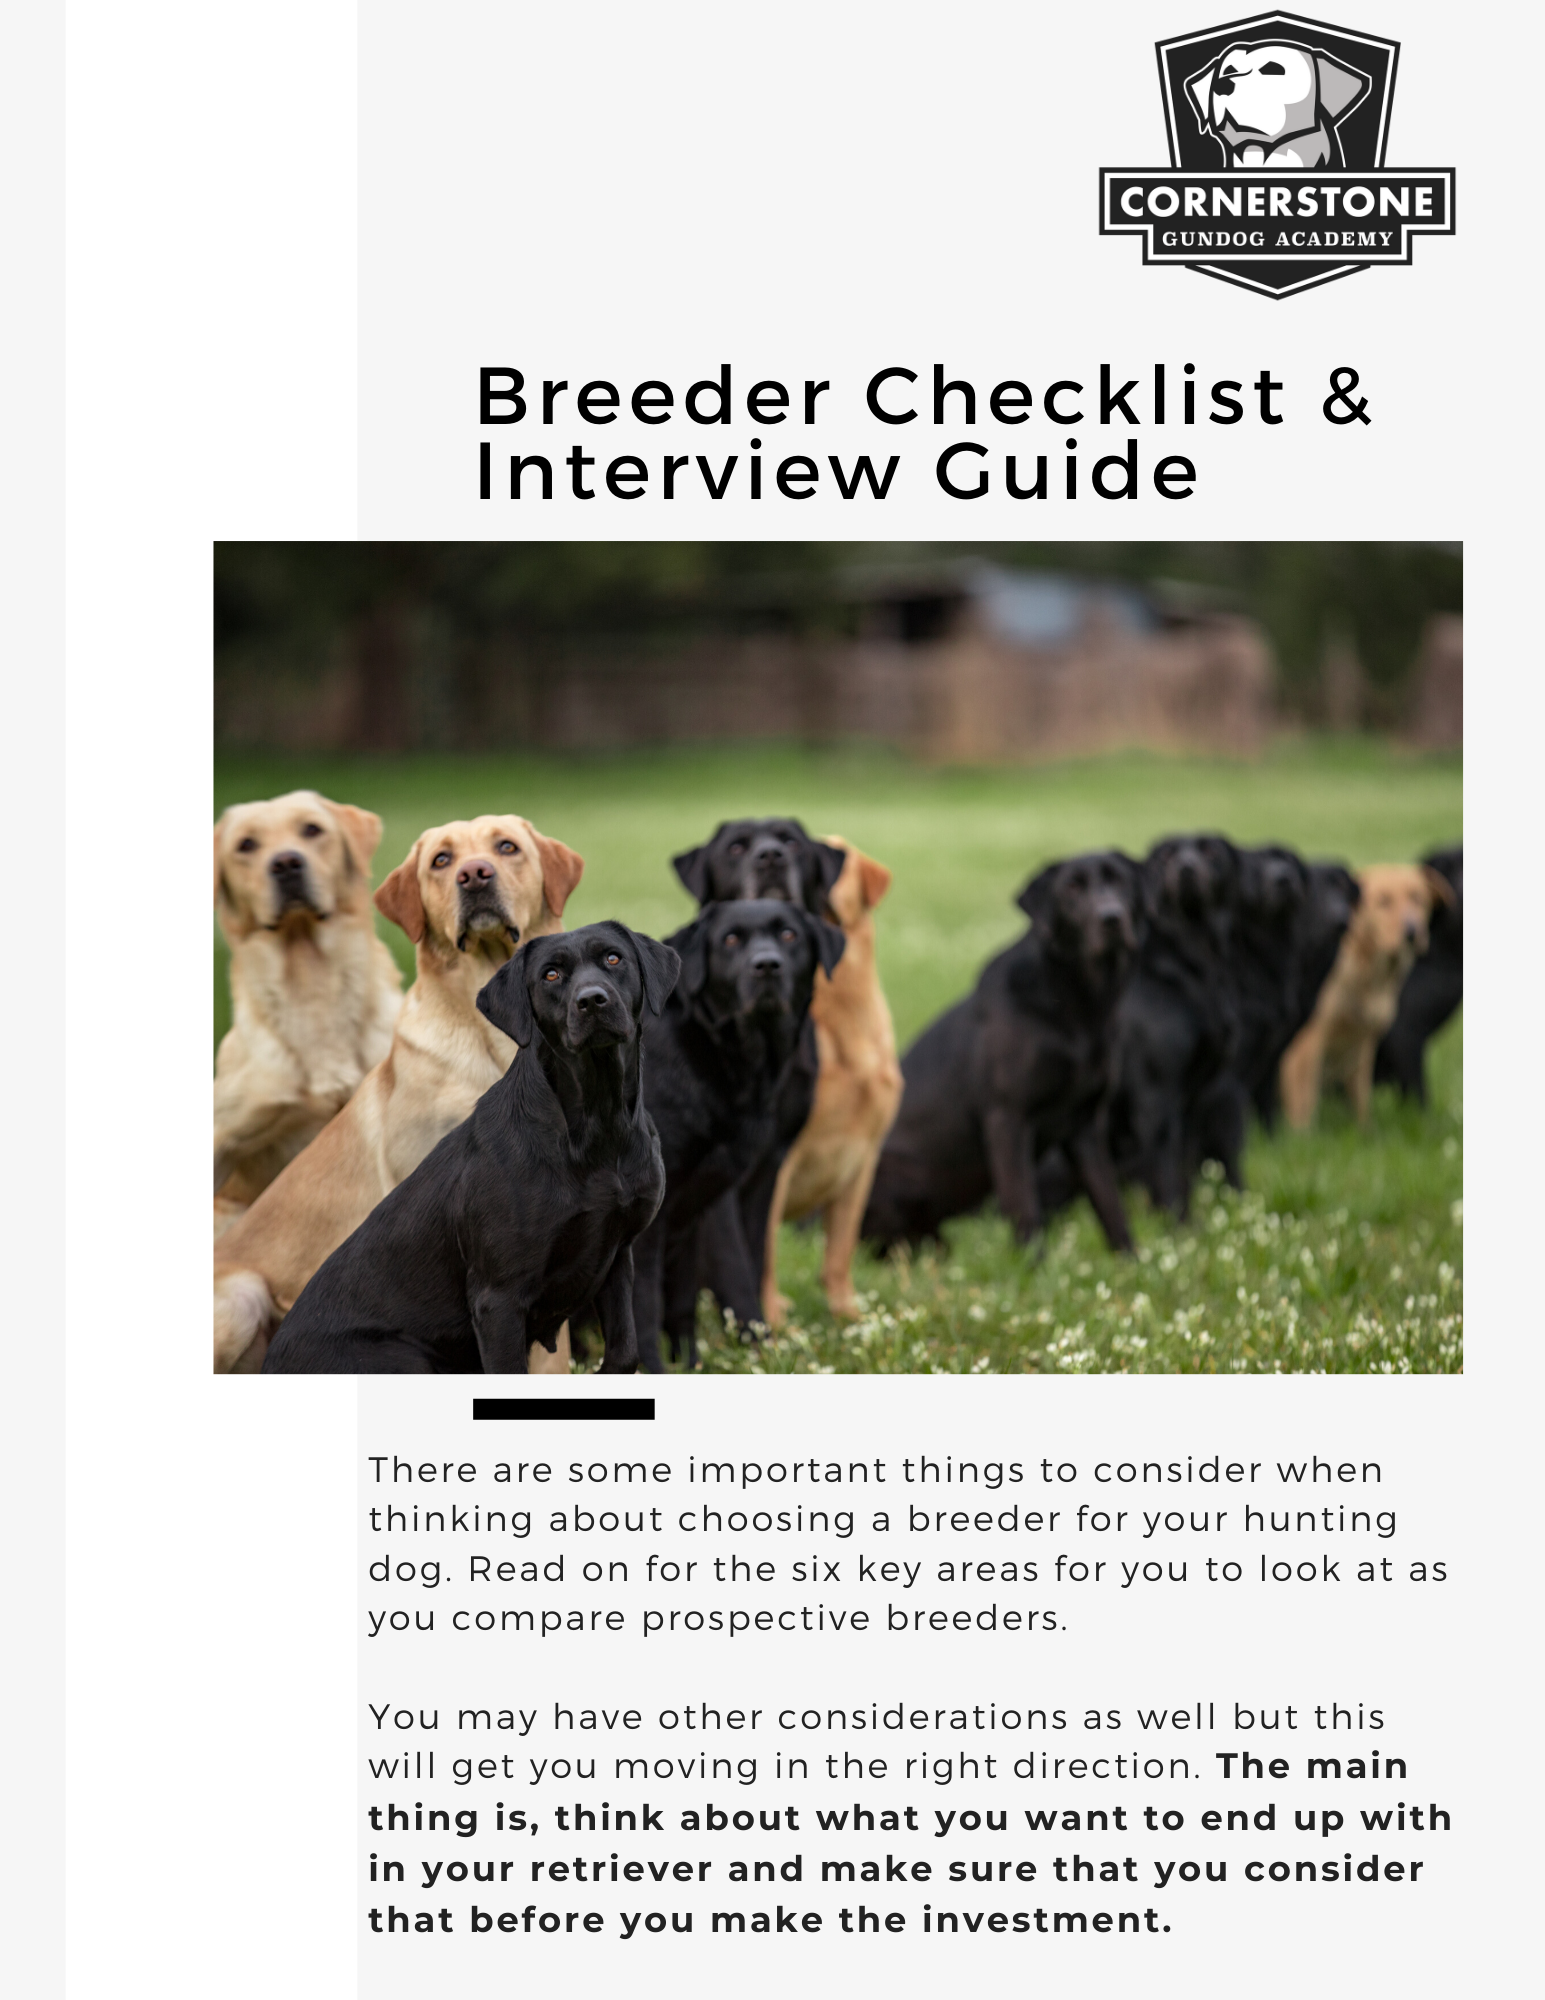 How to Choose a Good Breeder